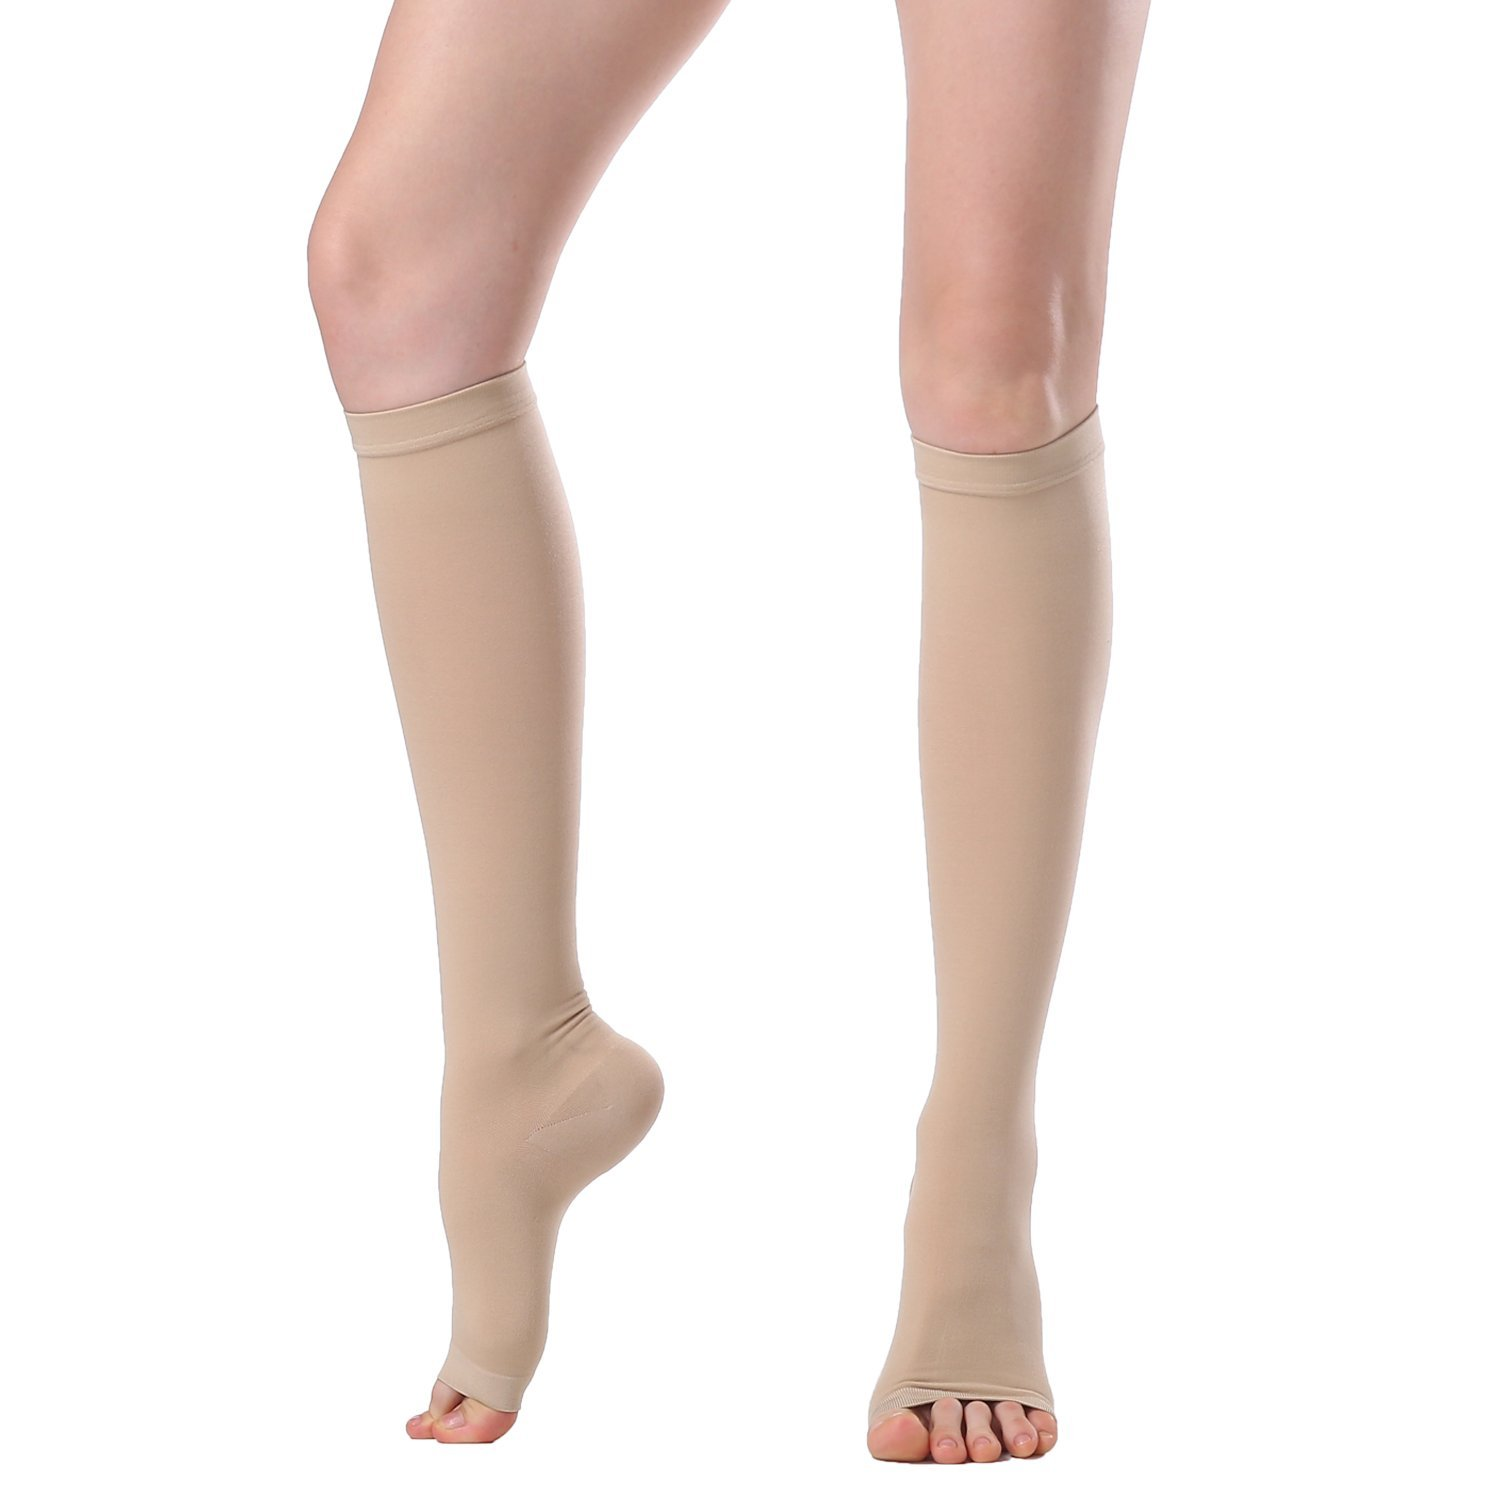 Compression Stockings & Stovepipe Socks Slimming Legging Knee High Sock For Women&Men-20-30mmHg-30-40mmHg Medical Support Hose Compression Socks,Treatment For Swelling,Varicose Veins (XXL, Beige(D))